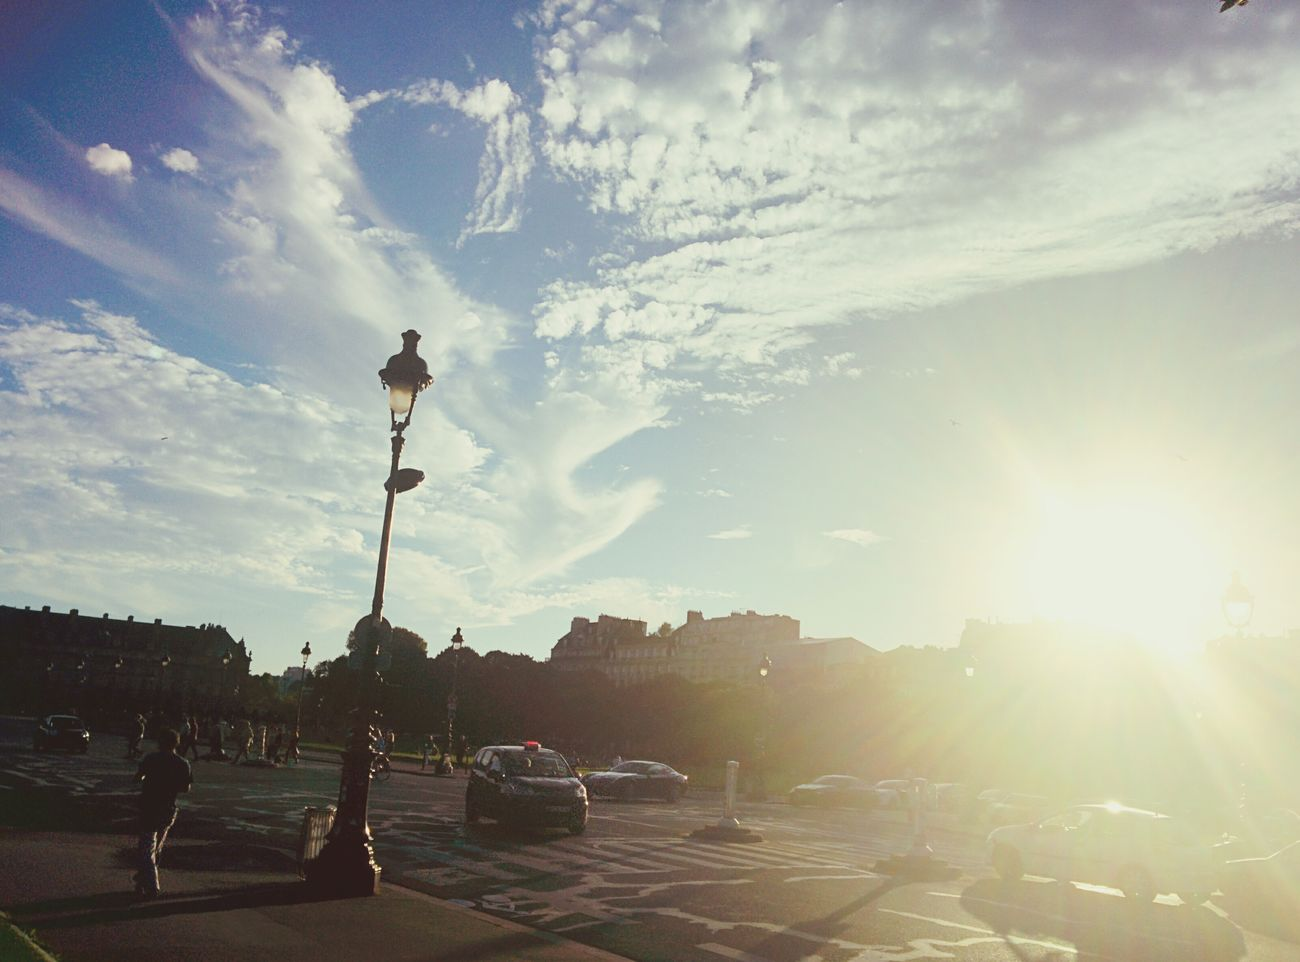 Paris Invalides  Chilling